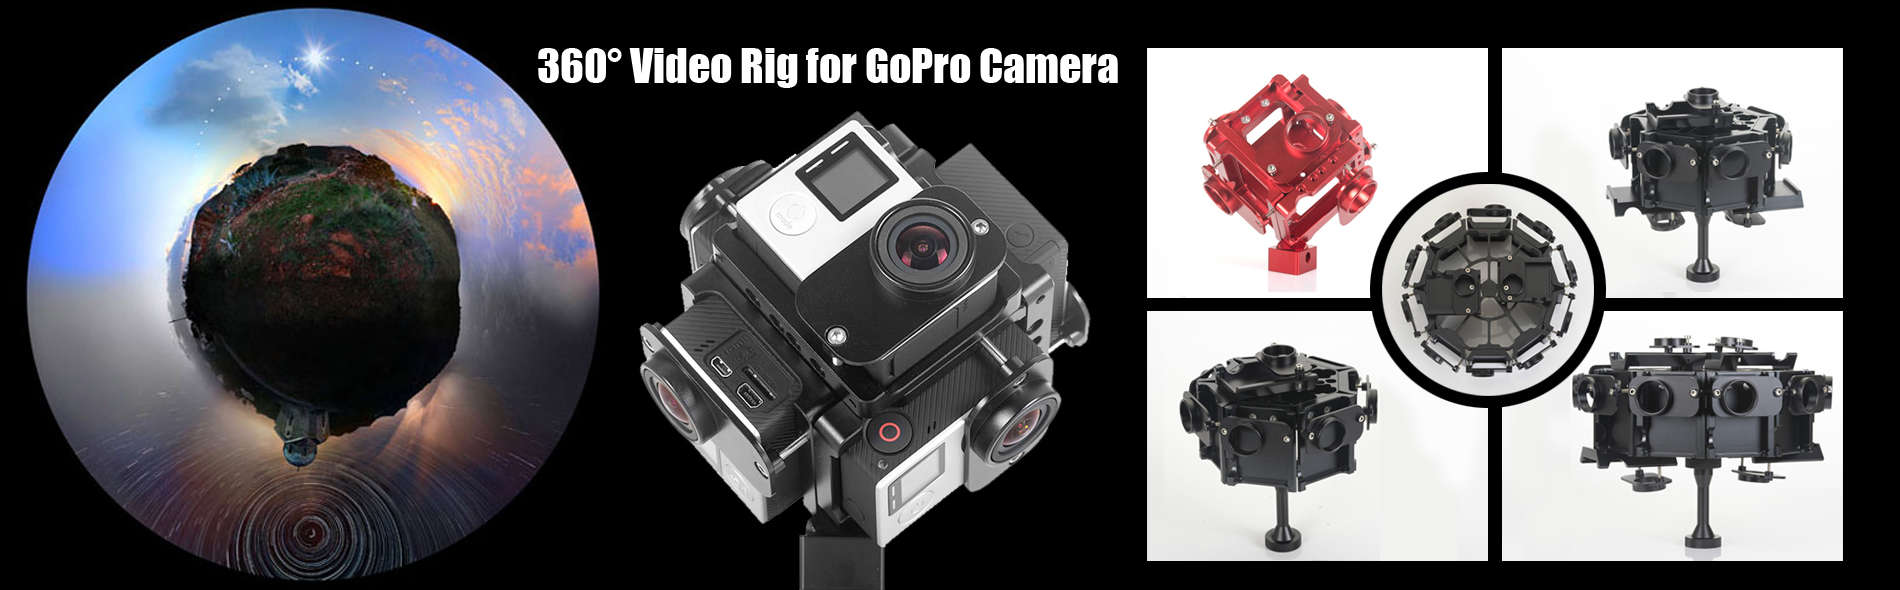 360-Vedio-Rig-For-GoPro-Action-Camera